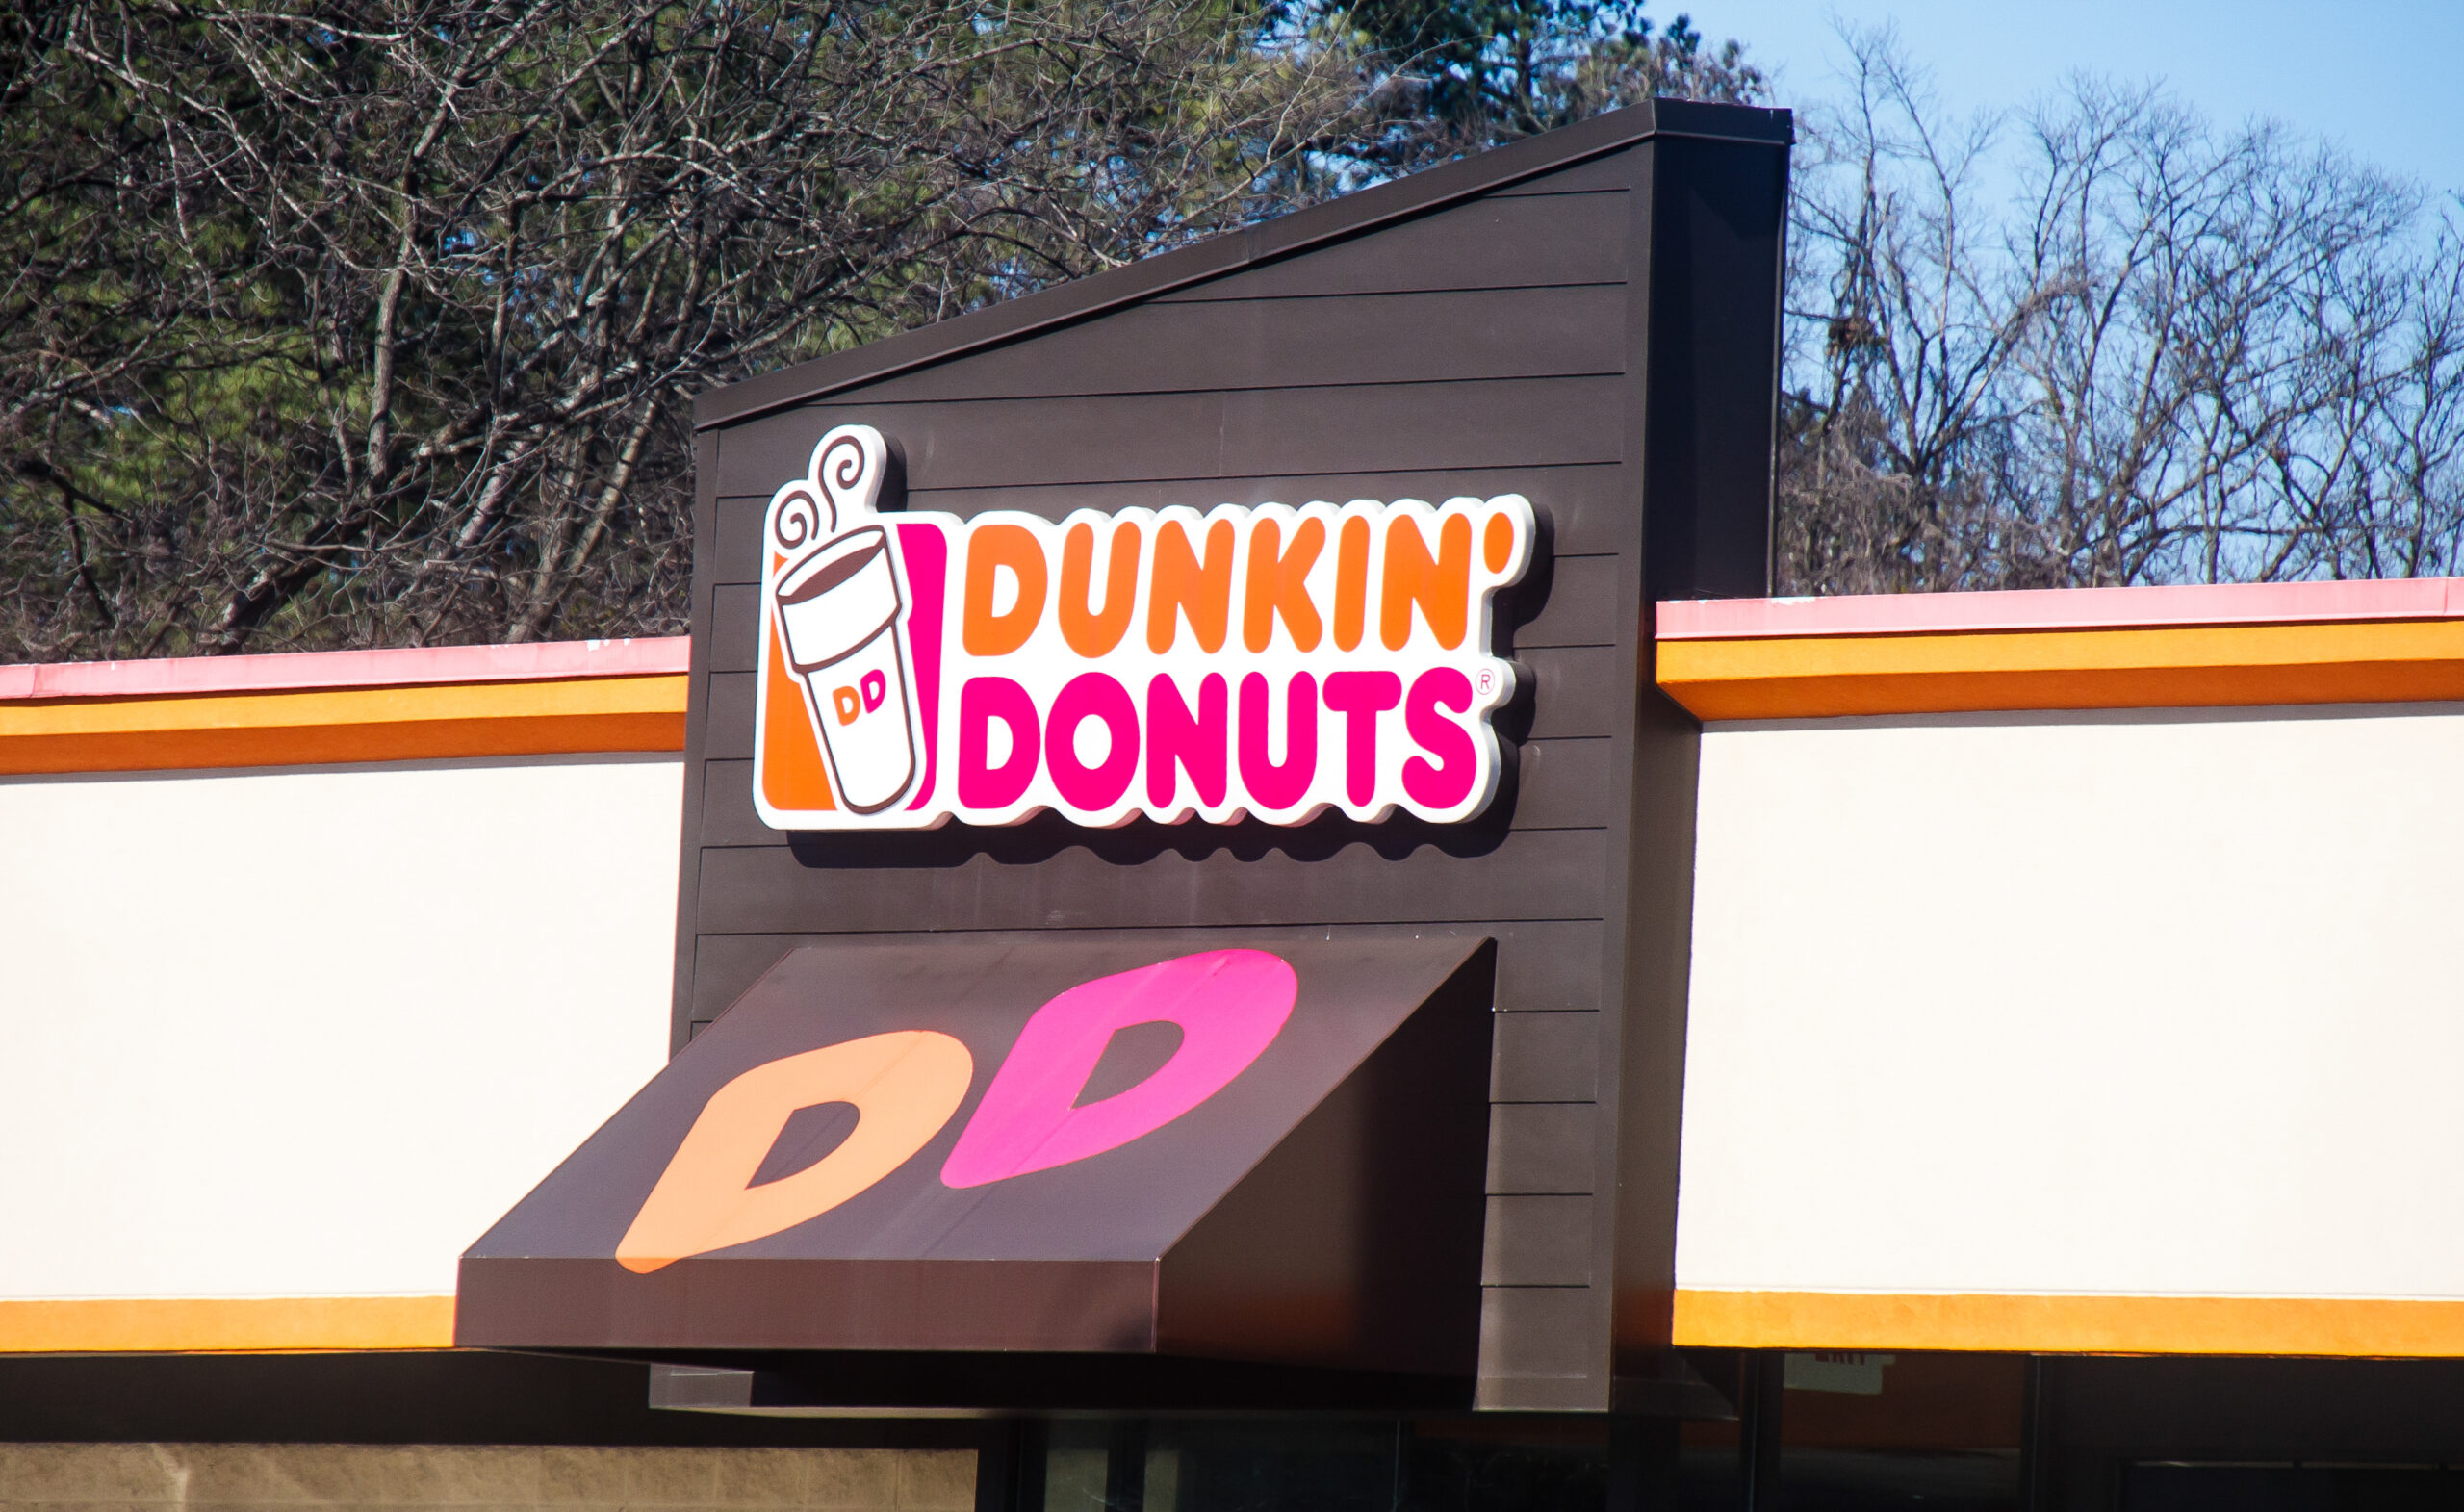 A dunkin donuts store that now carries oat milk for coffee drinks